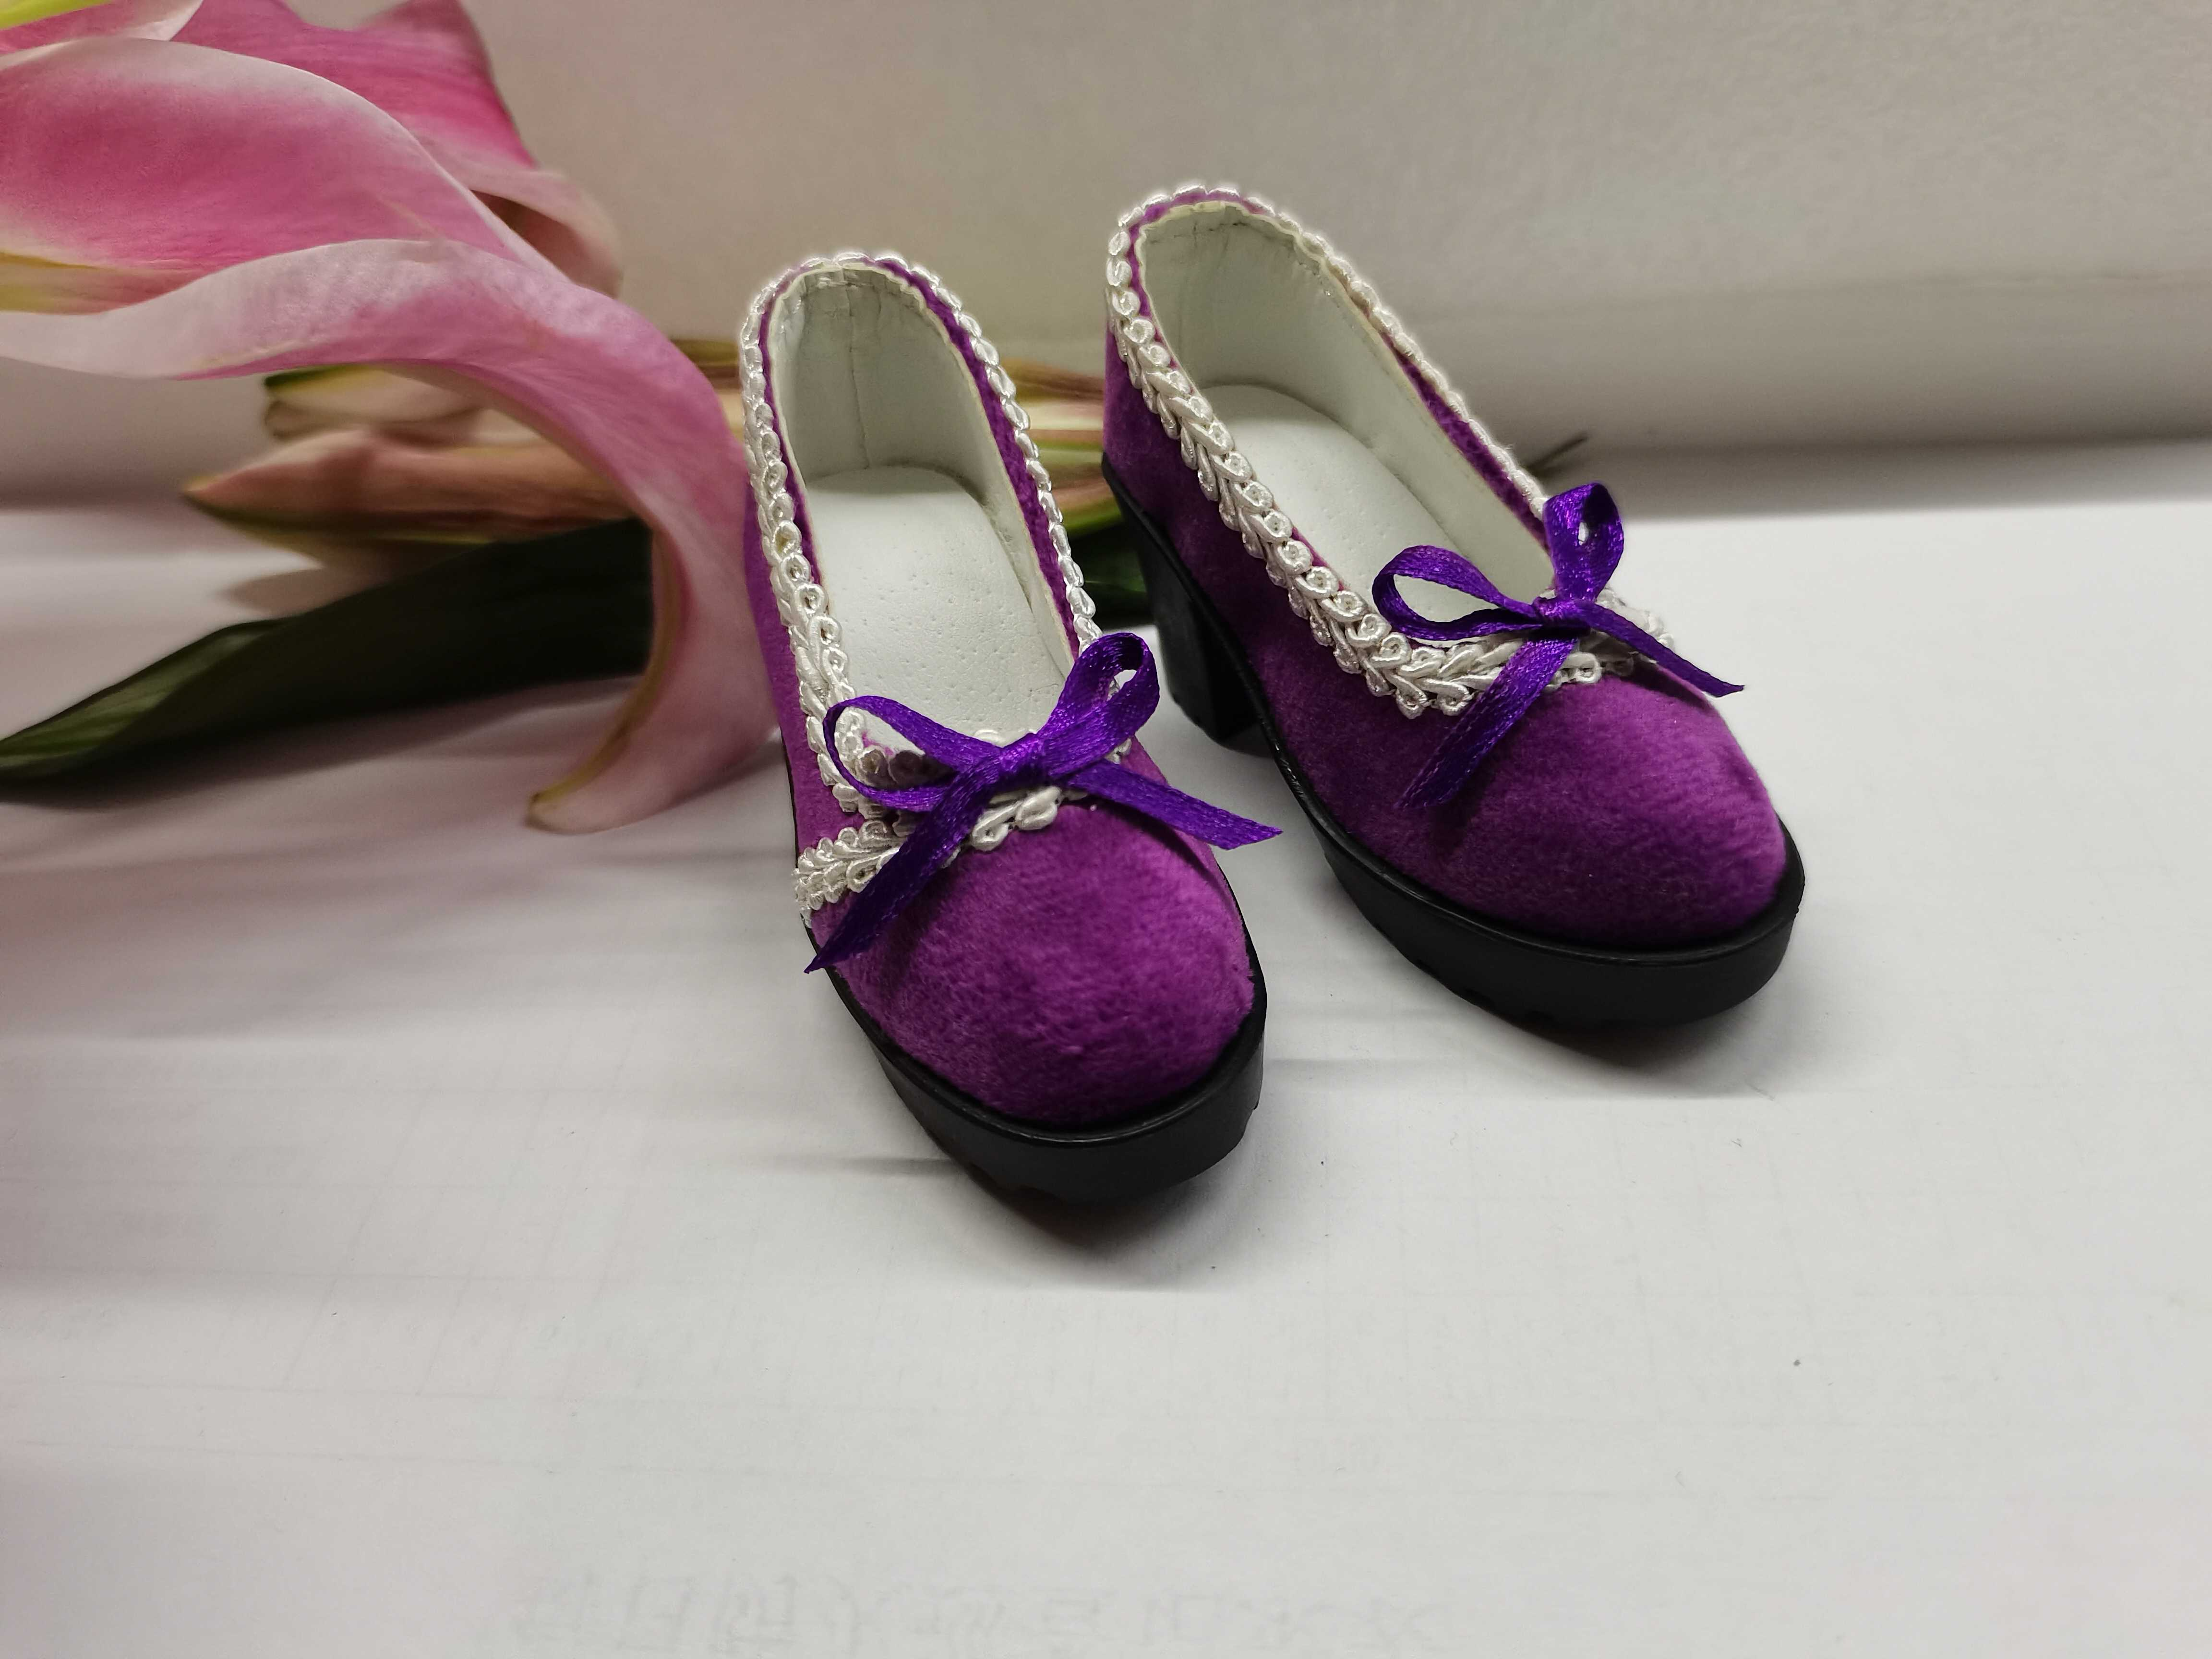 BJD 3 points, womens lace shoes have 3 points and 4 points